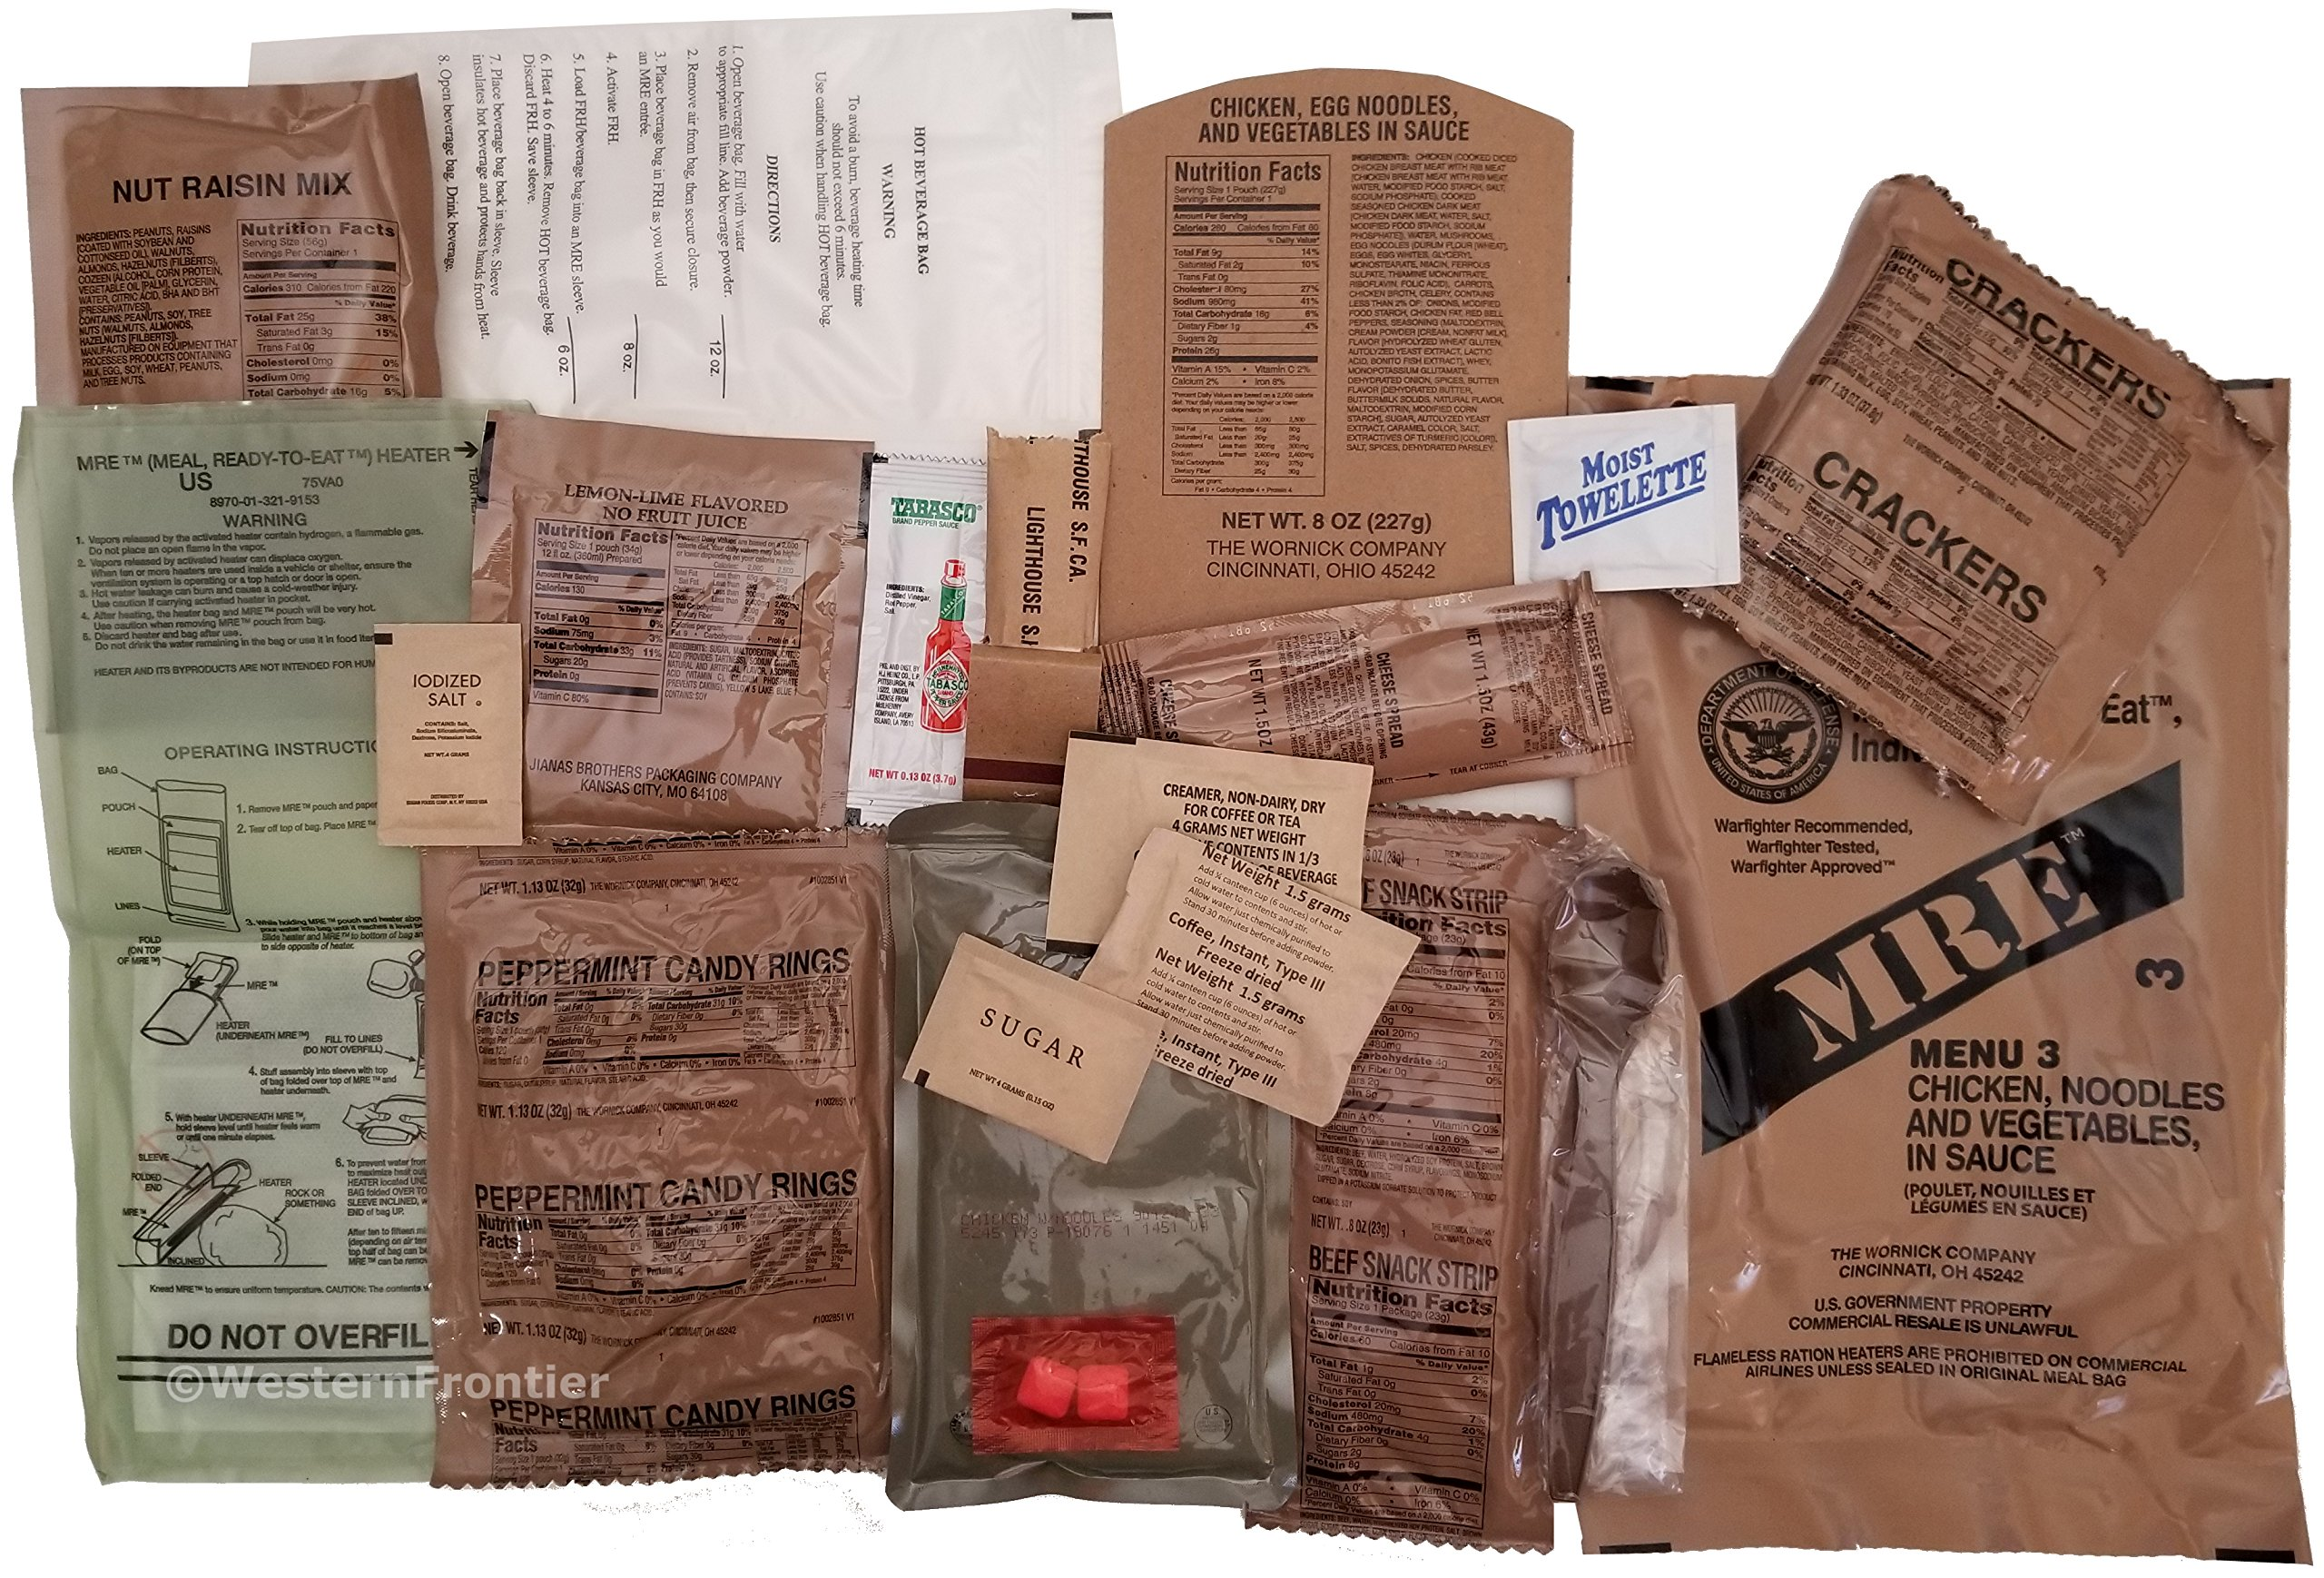 Western Frontier MRE 2019 Inspection Date Case A and Case B Bundle, 24 Meals Packed in 2016. Military Surplus Meal Ready to Eat. by Western Frontier (Image #4)